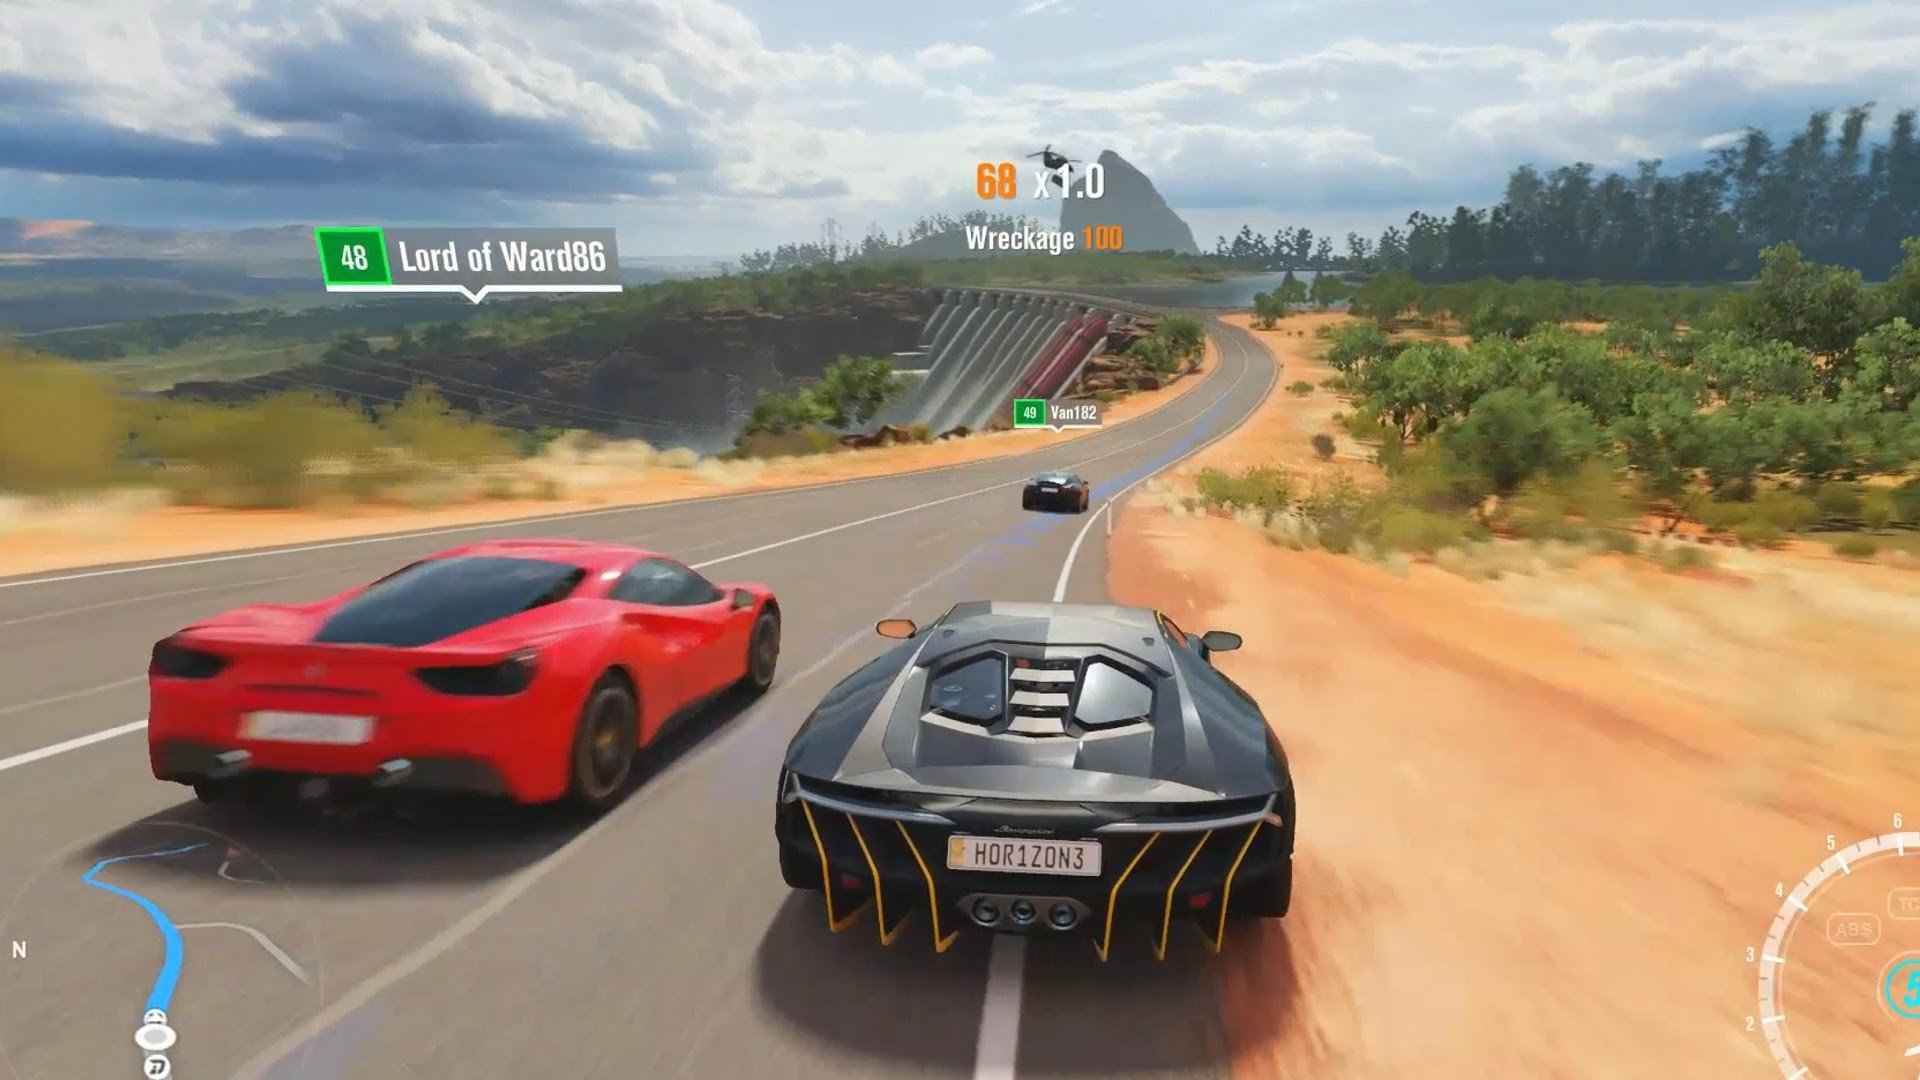 Gamer races against the ghost of his departed friend in Forza Horizon 3